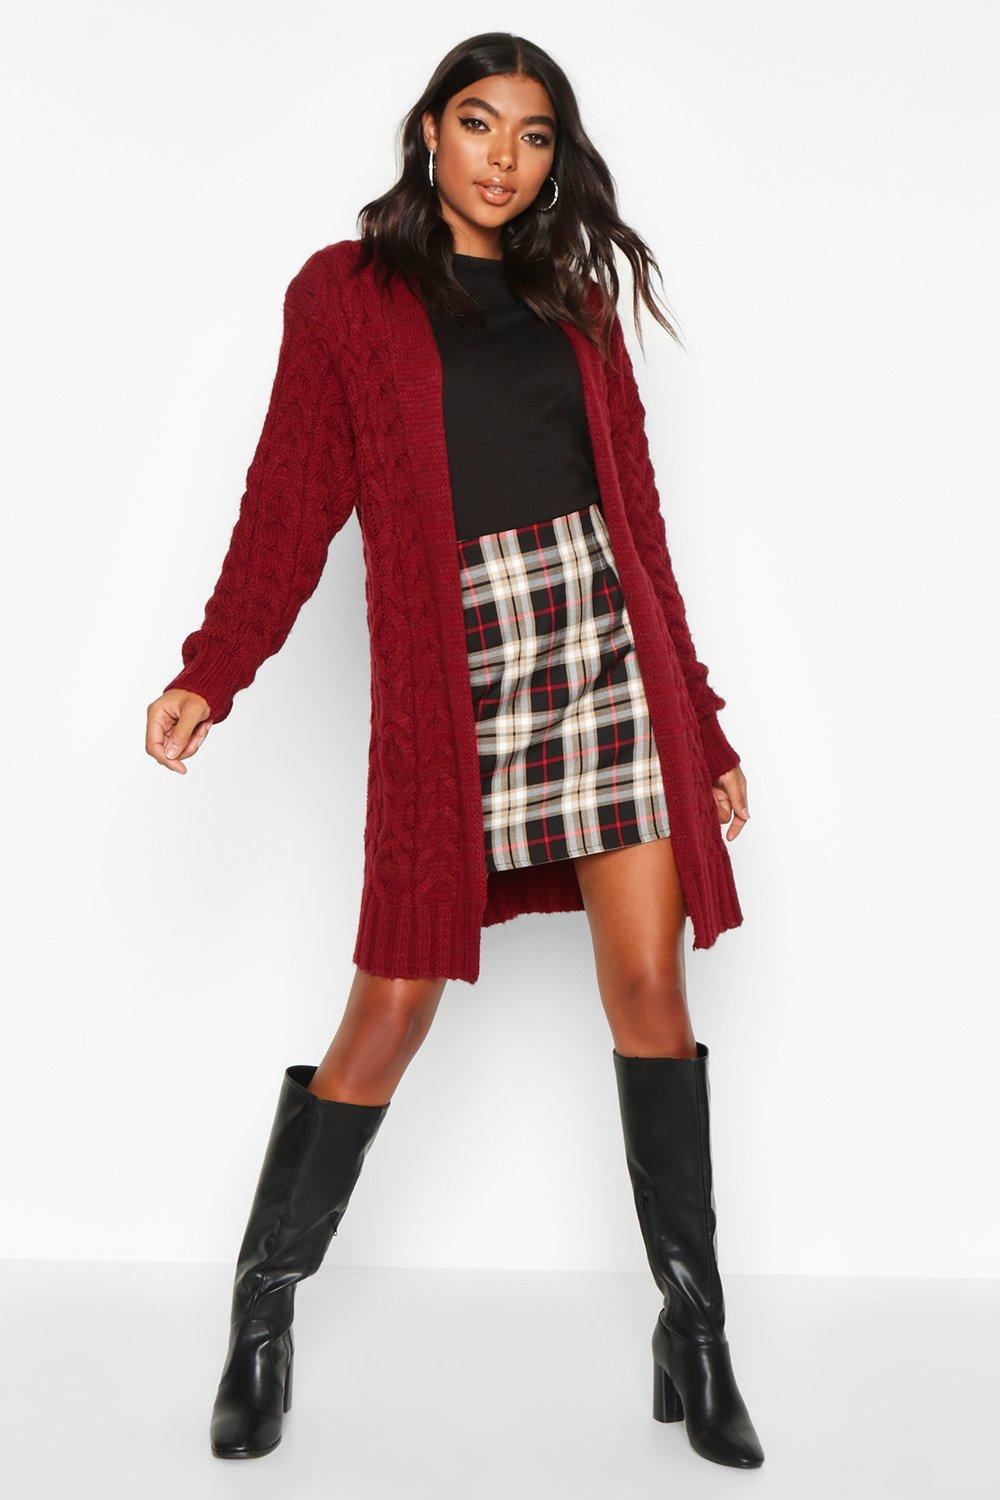 Womens Tall Weicher Strick-Cardigan mit Zopfmuster - beerenrot - S/M, Beerenrot - Boohoo.com